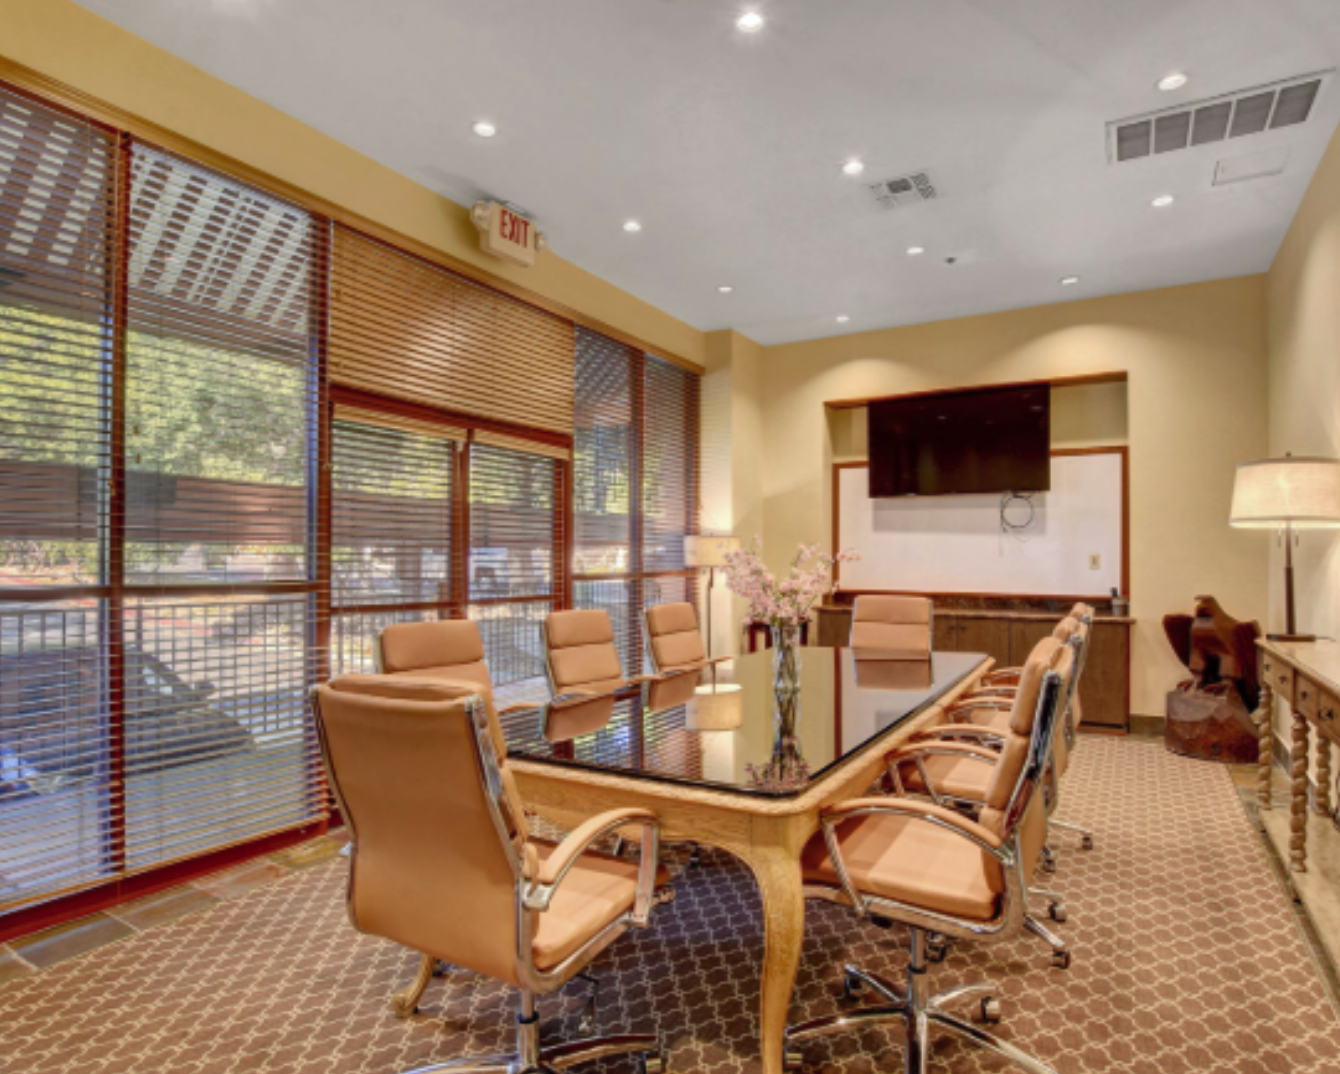 Conference Room with window view at Lakeside Business Suites